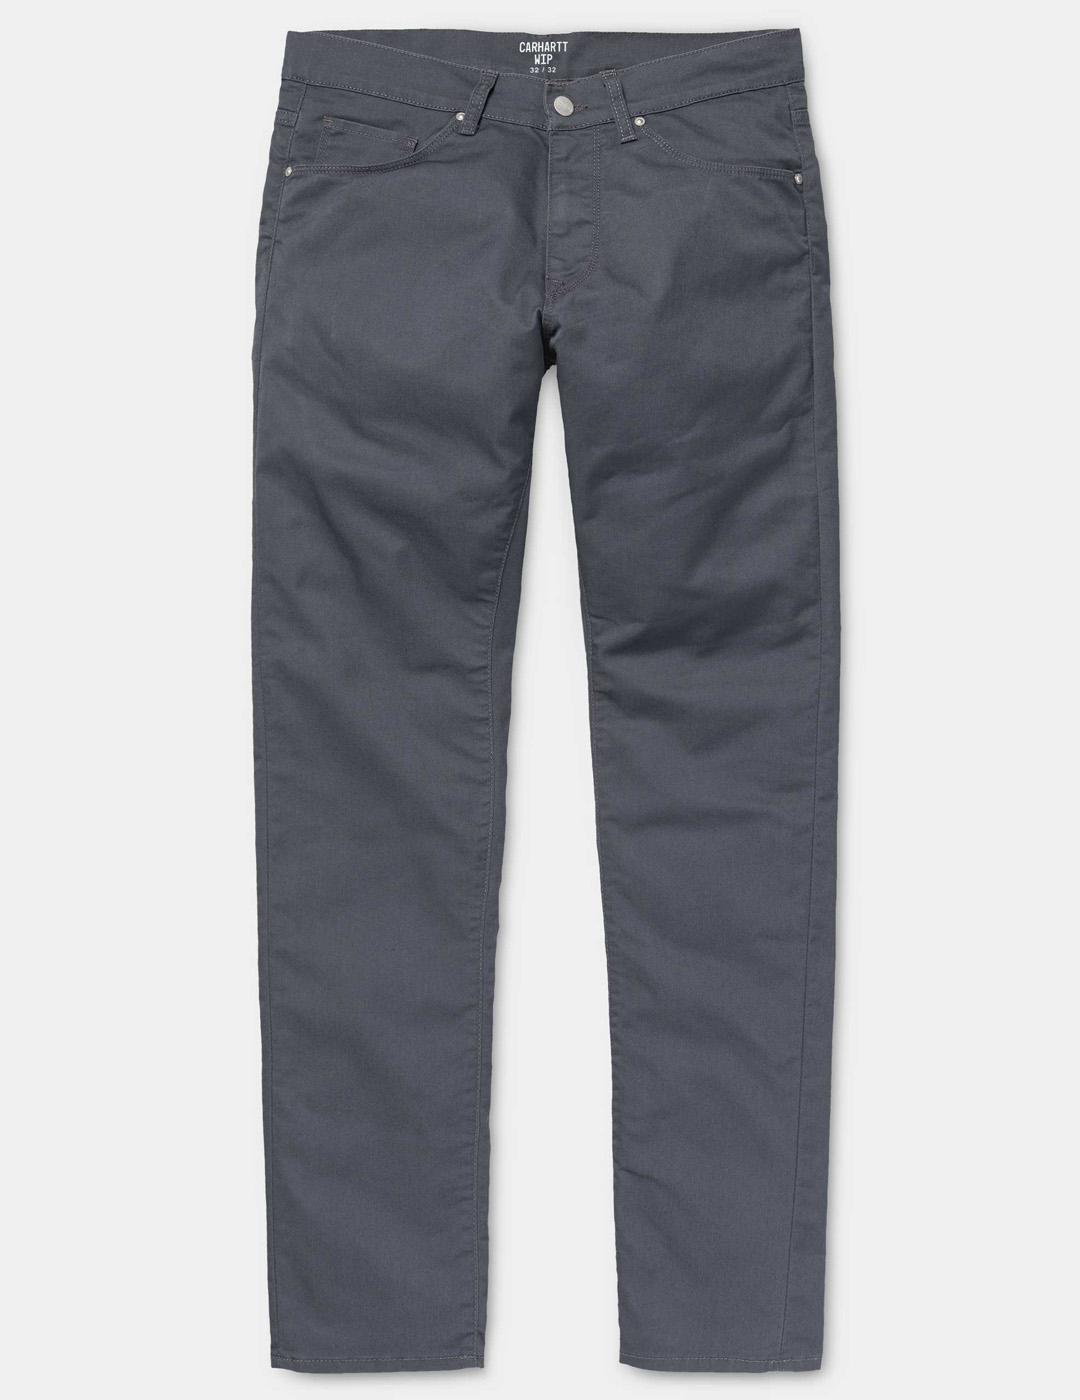 Pantalón Carhartt VICIOUS - Blacksmith rinsed